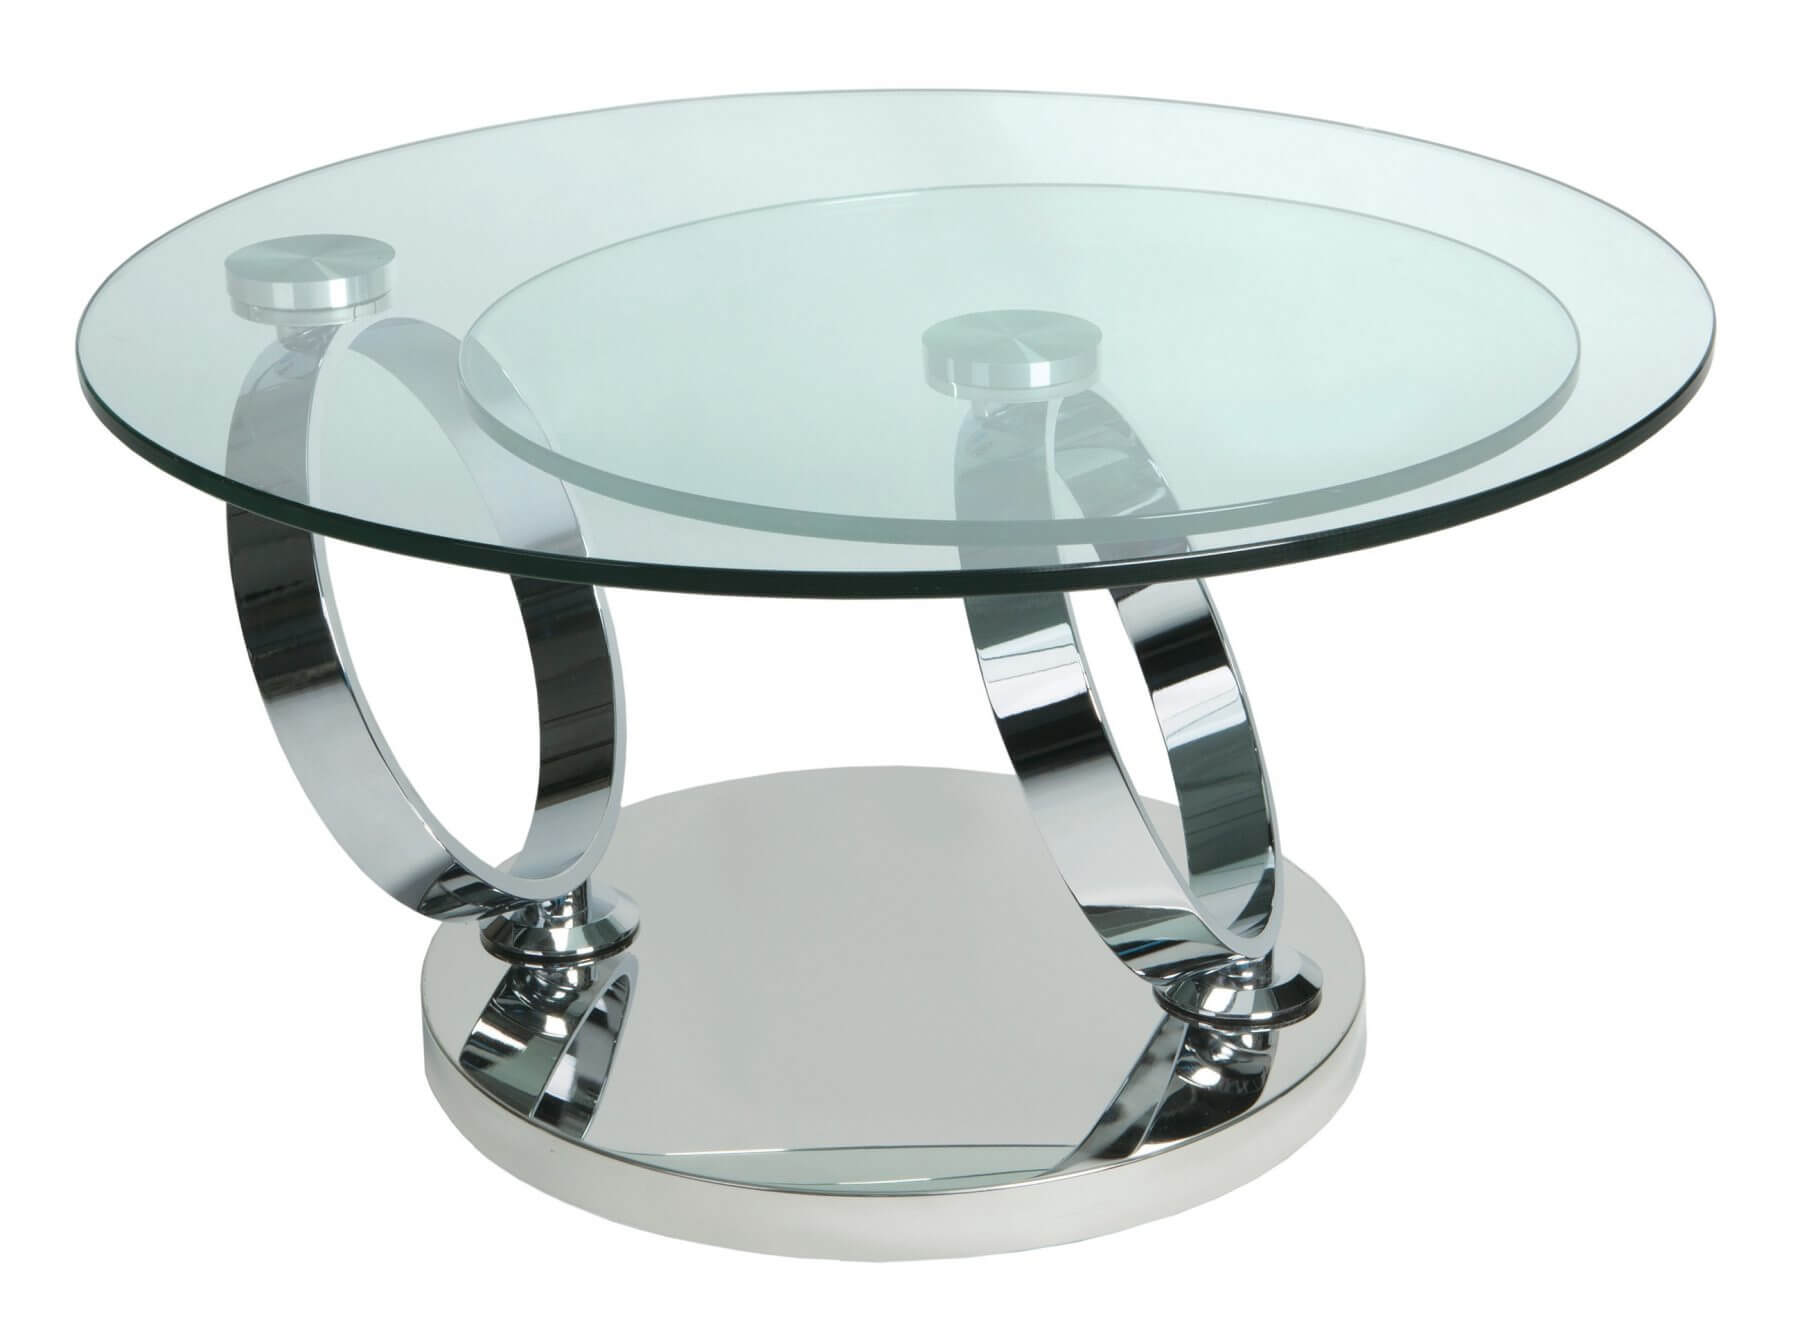 Rotating coffee table rascalartsnyc magic rotating glass coffee table stainless steel tables geotapseo Image collections